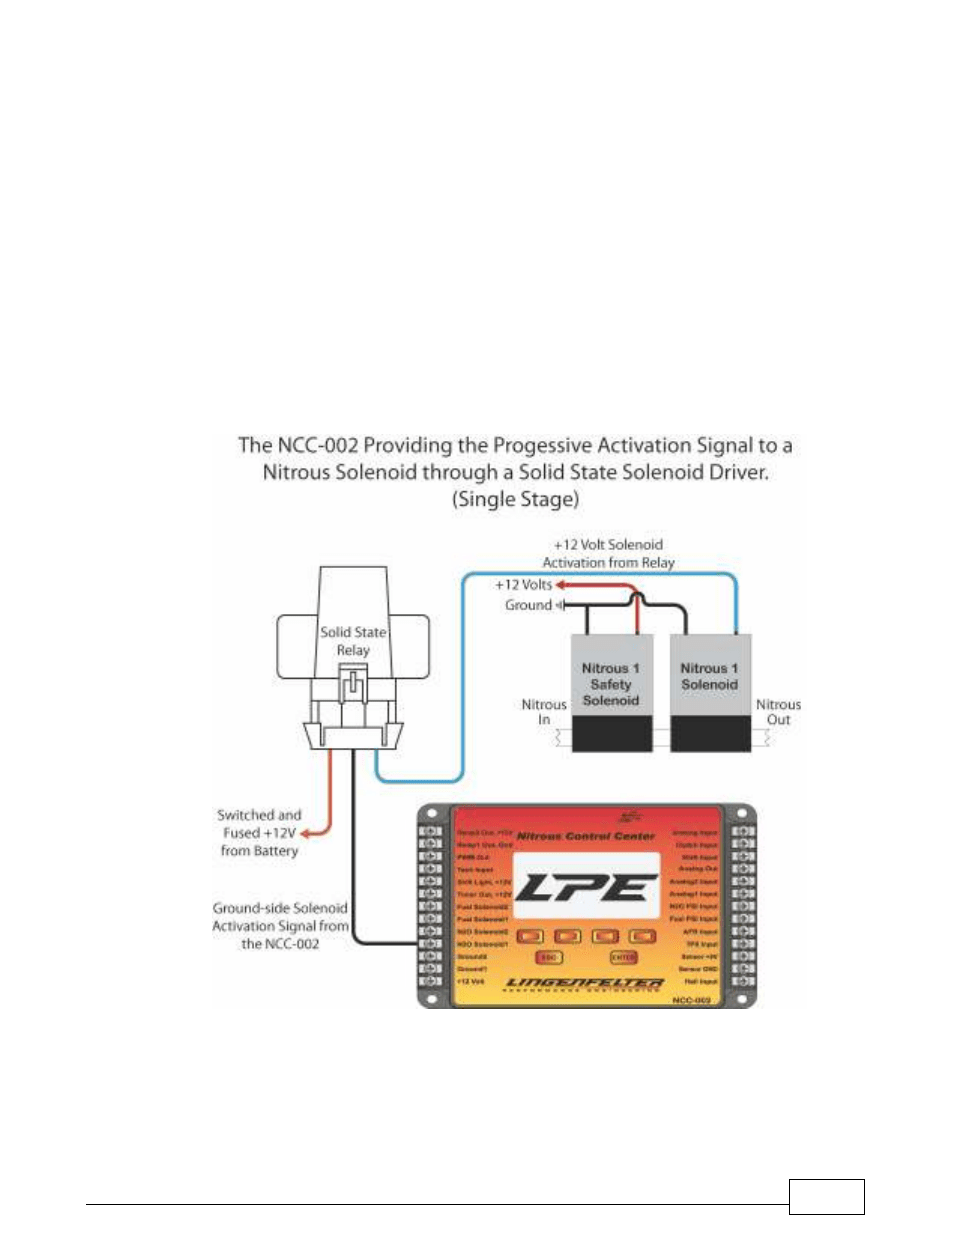 medium resolution of ncc wiring diagram simple wiring schema schematic circuit diagram lingenfelter l460240000 lingenfelter ncc 002 nitrous control